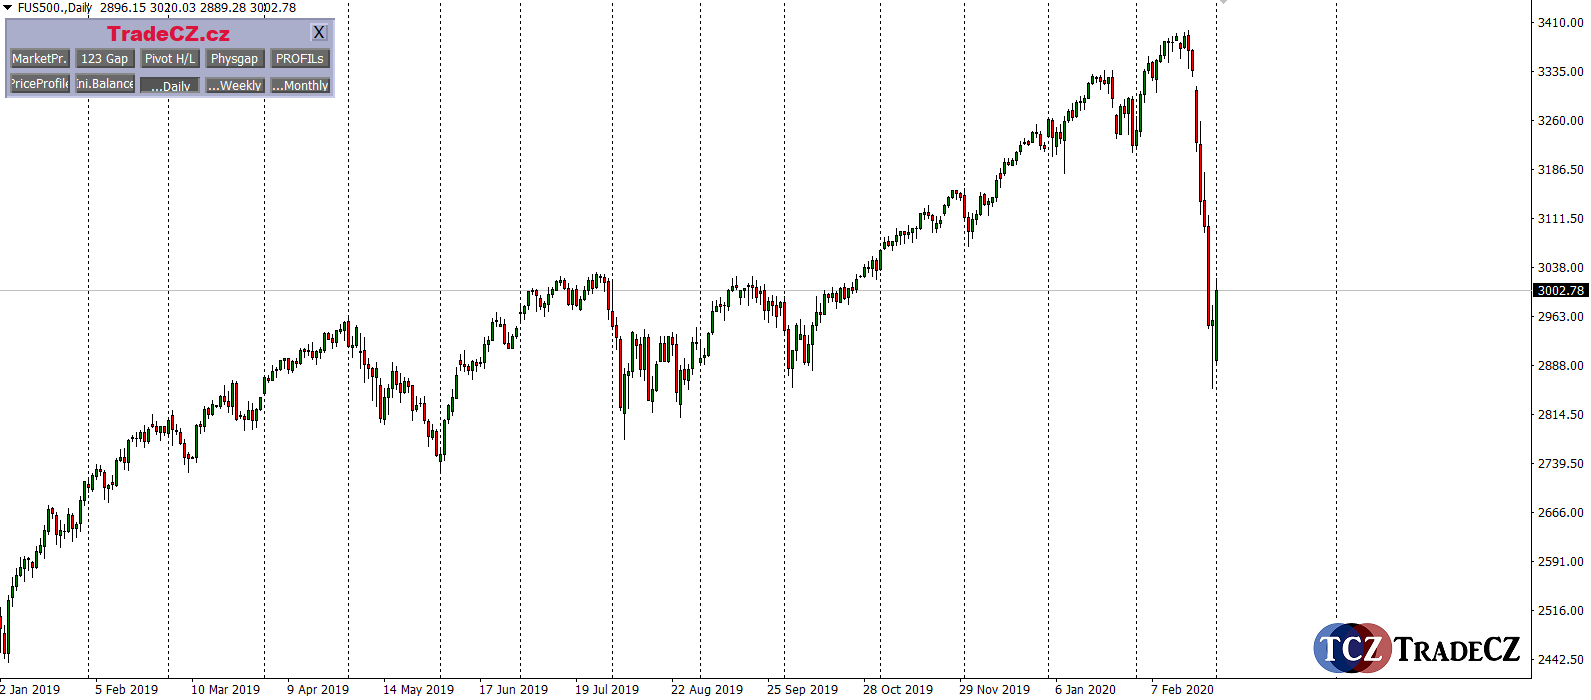 Index SP500 sell off